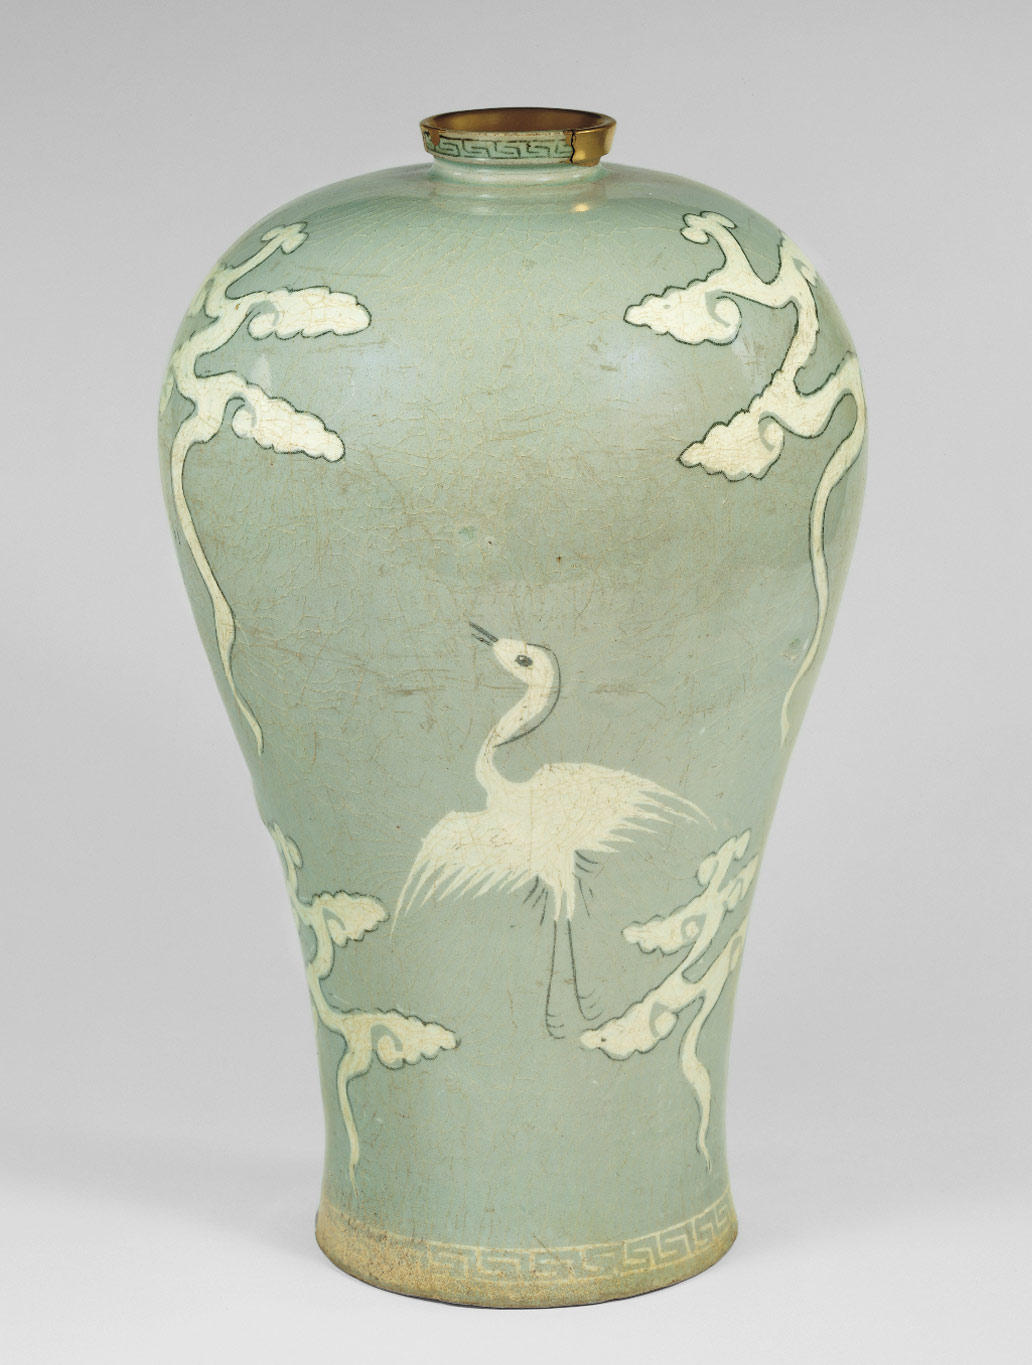 goryeo celadon essay heilbrunn timeline of art history the maebyeong decoration of cranes and clouds